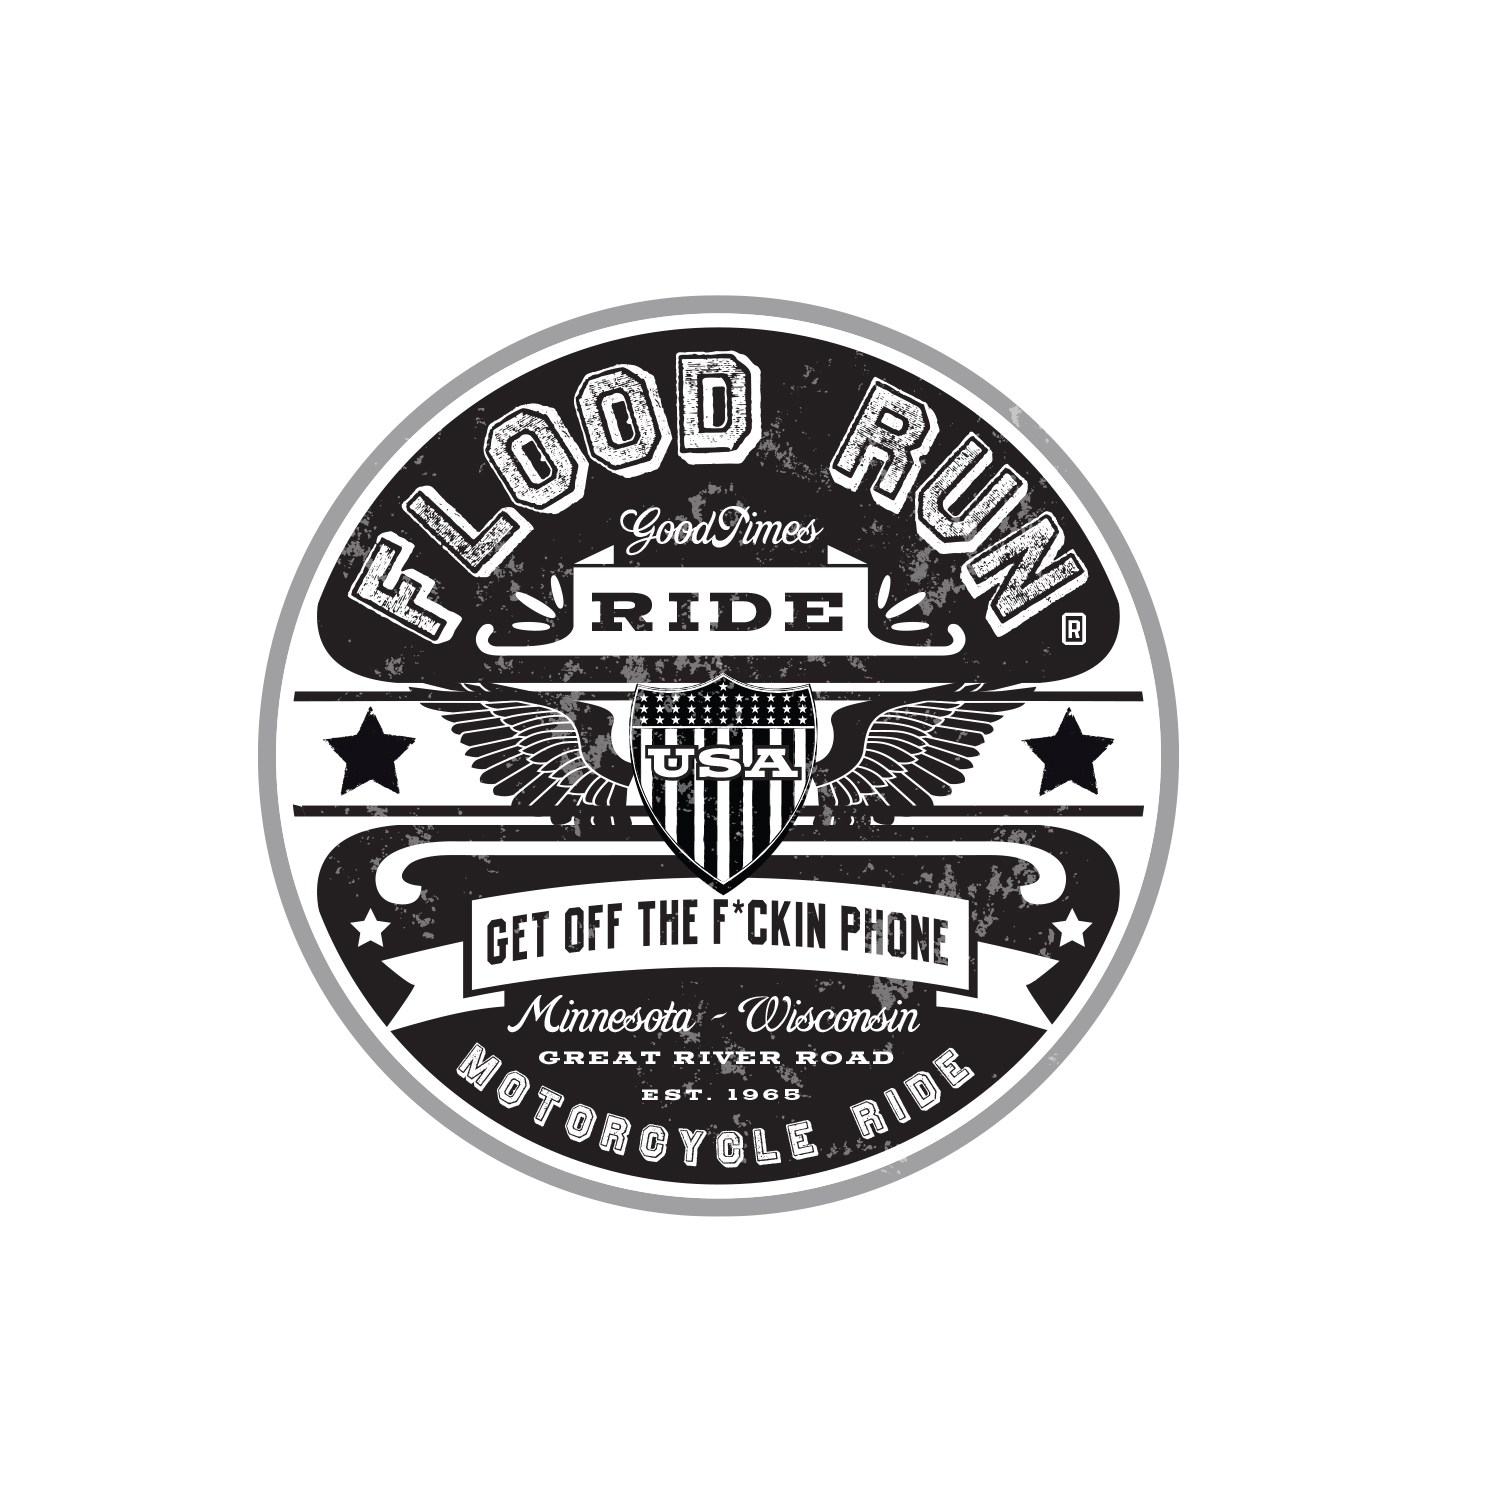 Flood Run Charity Motorcycle Ride Logo